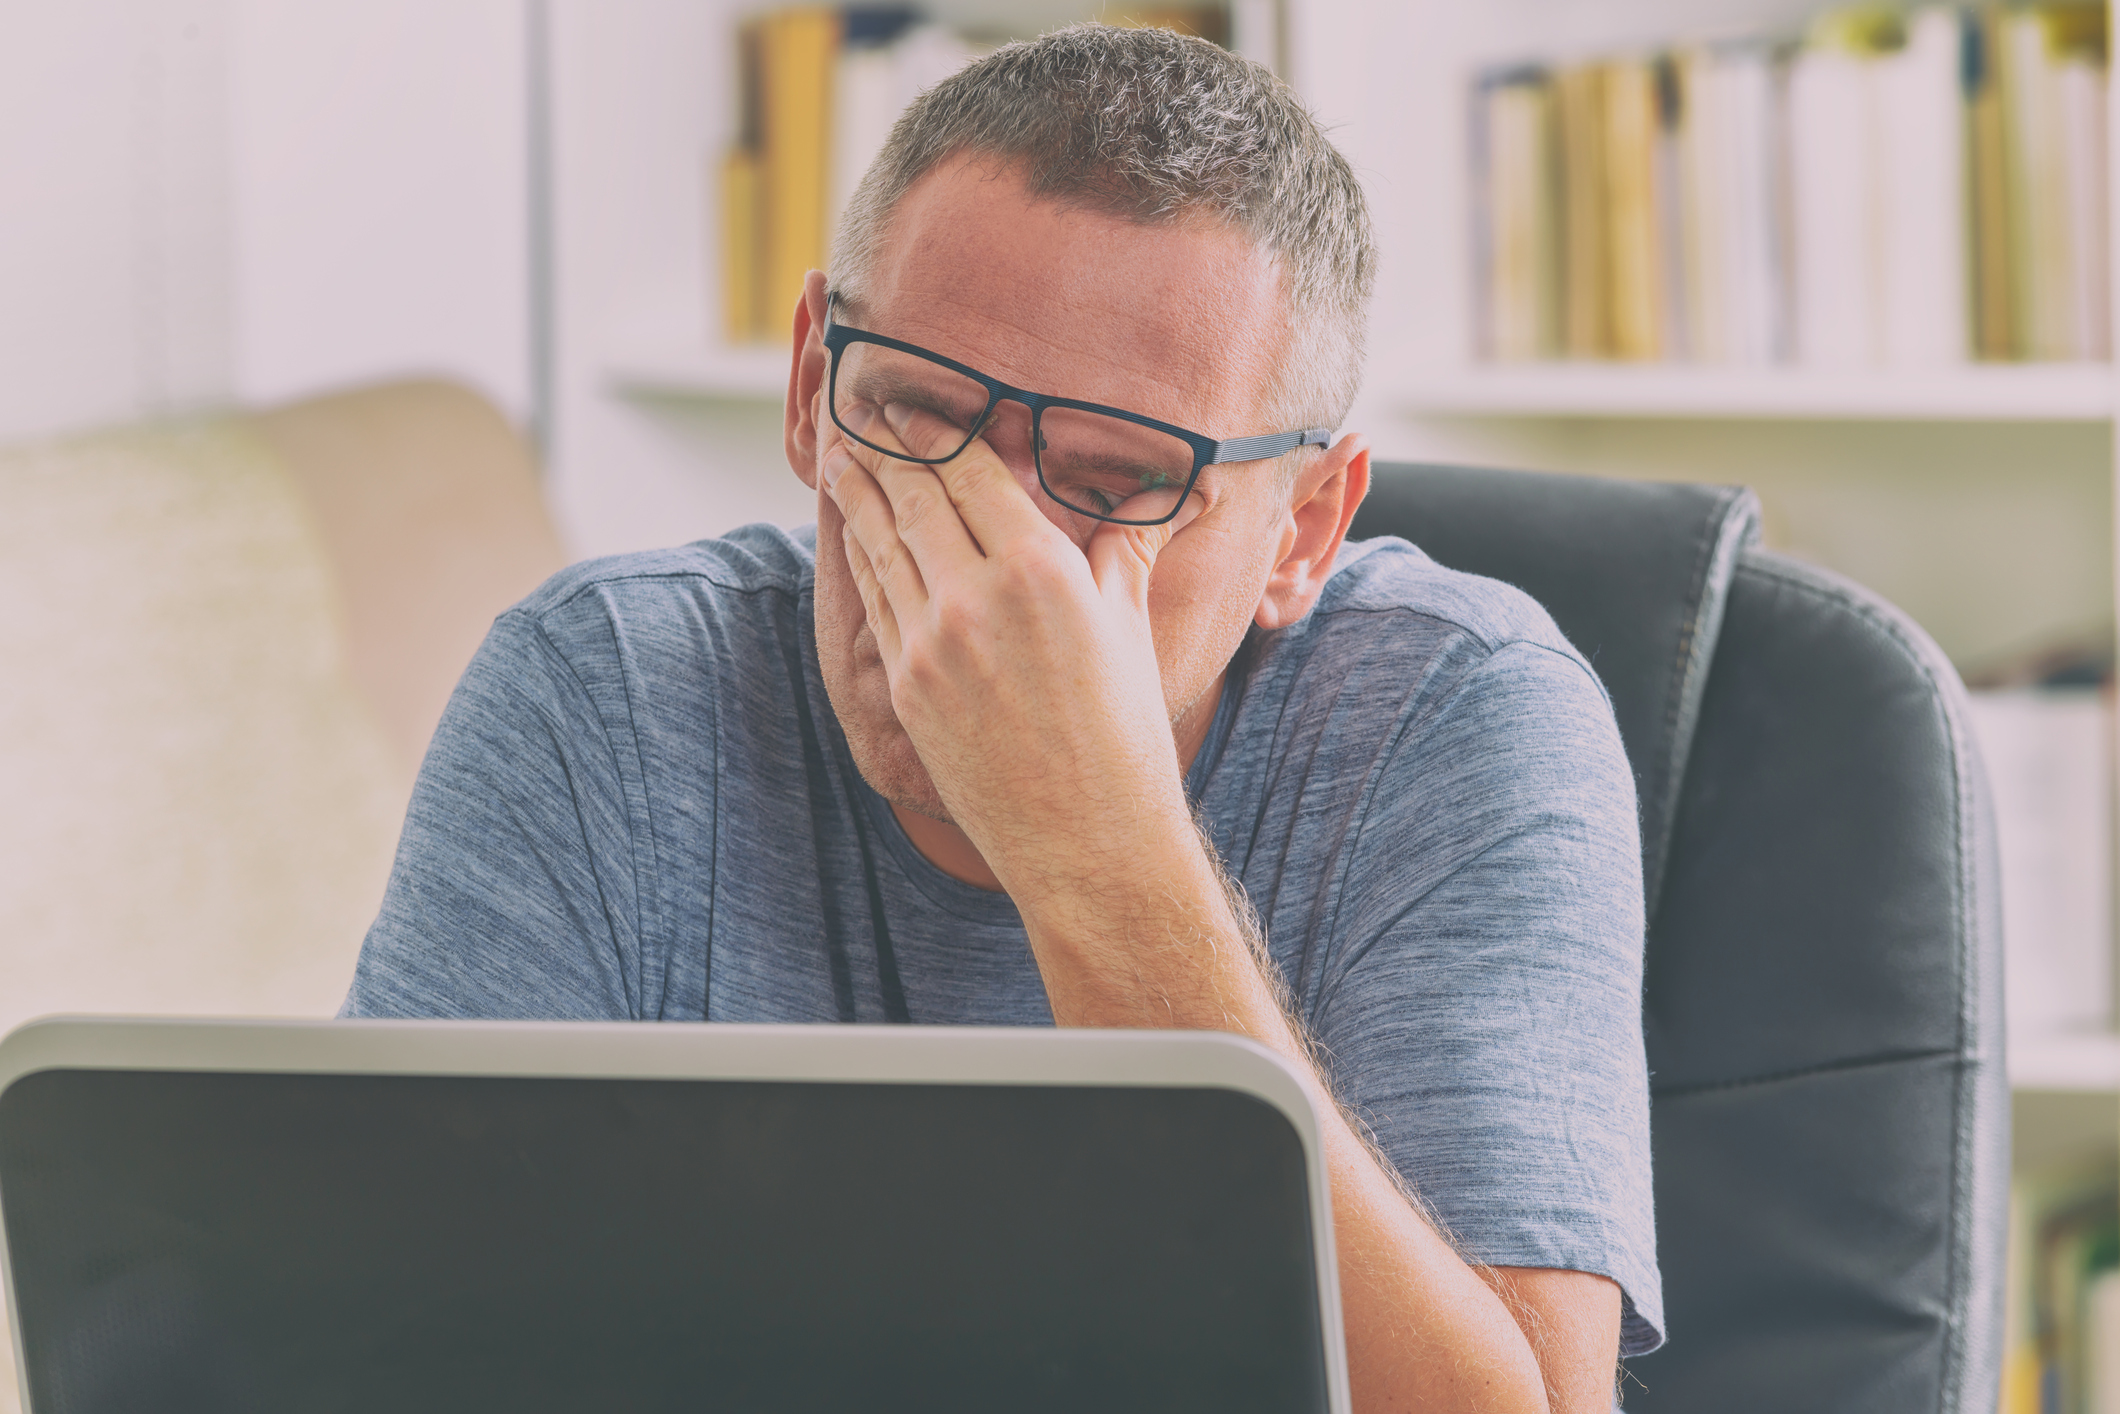 Tired man rubbing his eyes while working with laptop